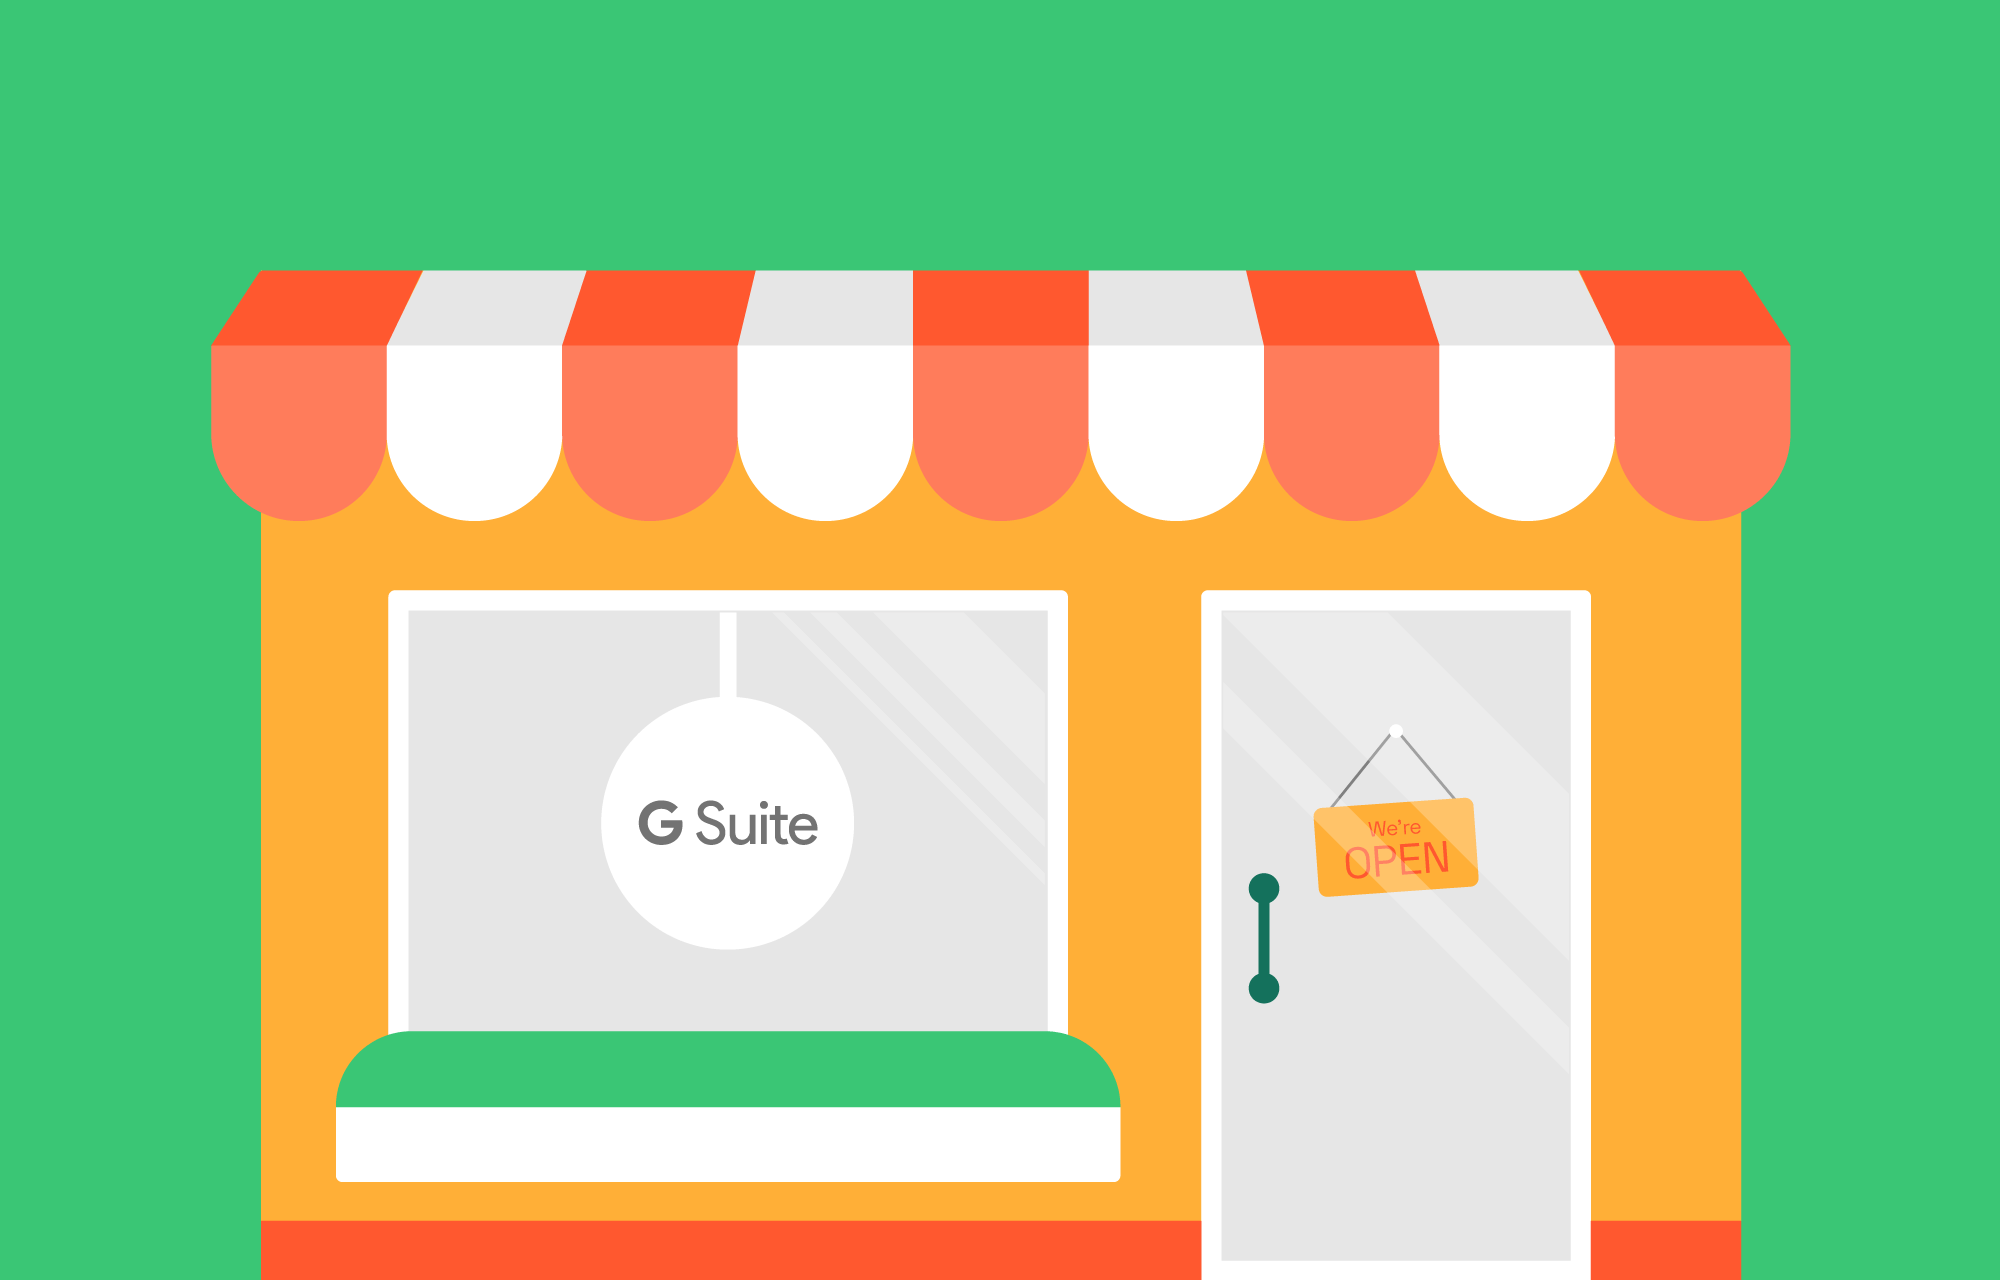 G Suite logo in a resellers shopping window.